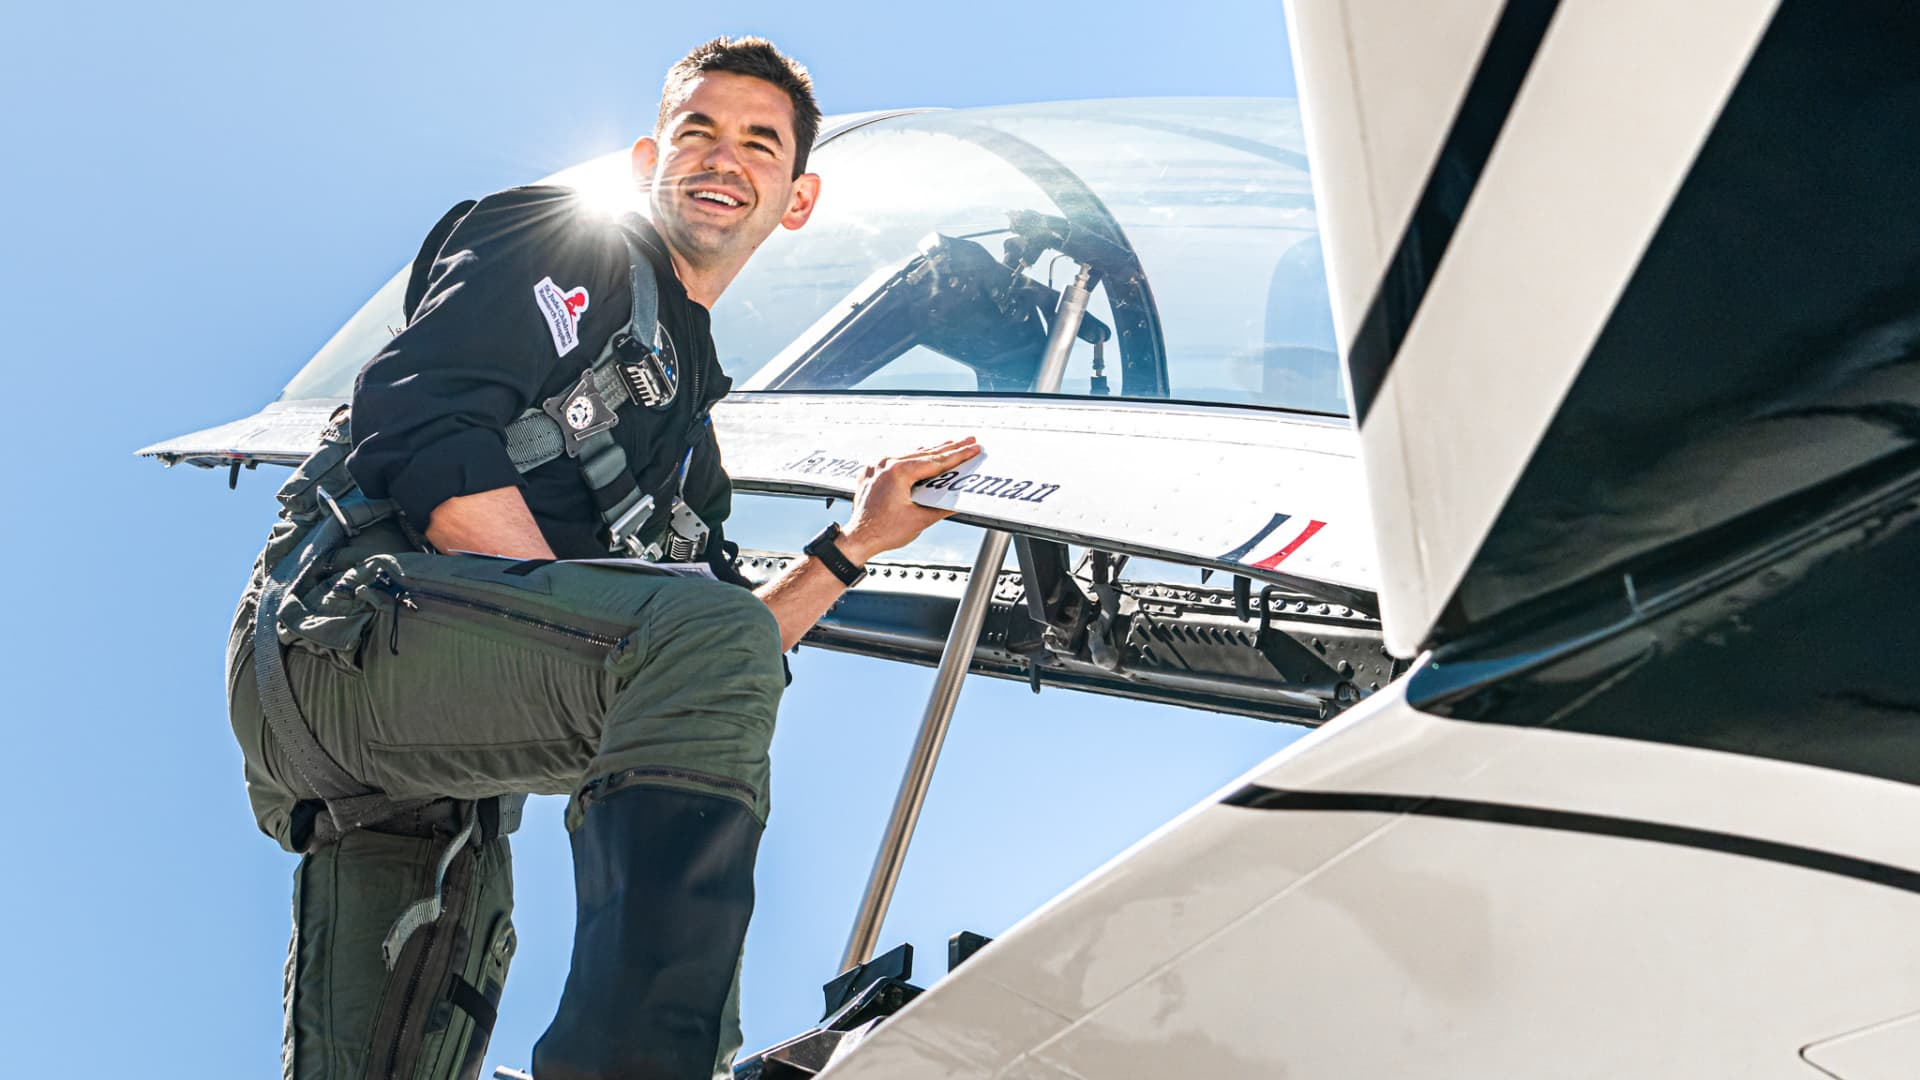 Jared Isaacman boards a U.S. Air Force Thunderbirds fighter jet during a flight on April 9, 2021.